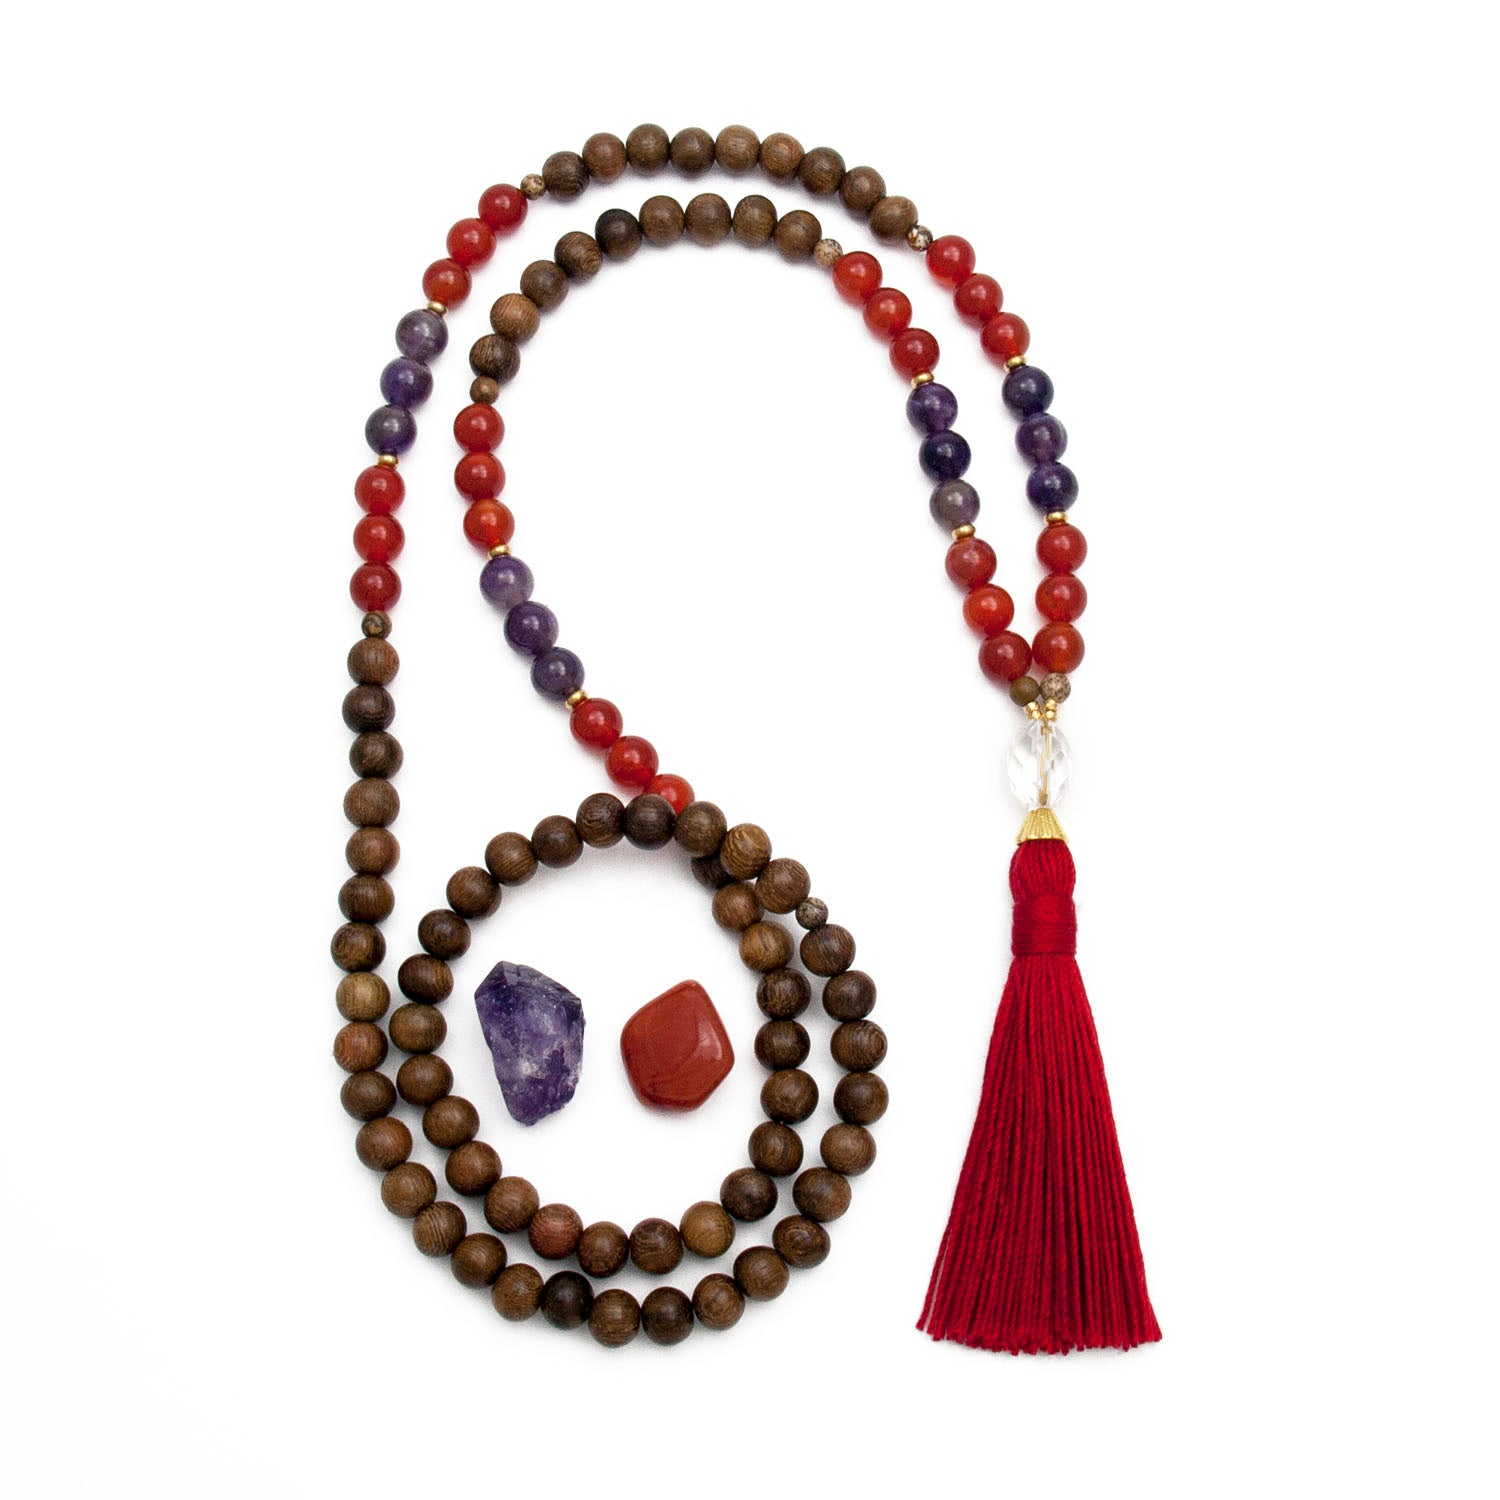 Aries Zodiac Mala Necklace by Golden Lotus Mala